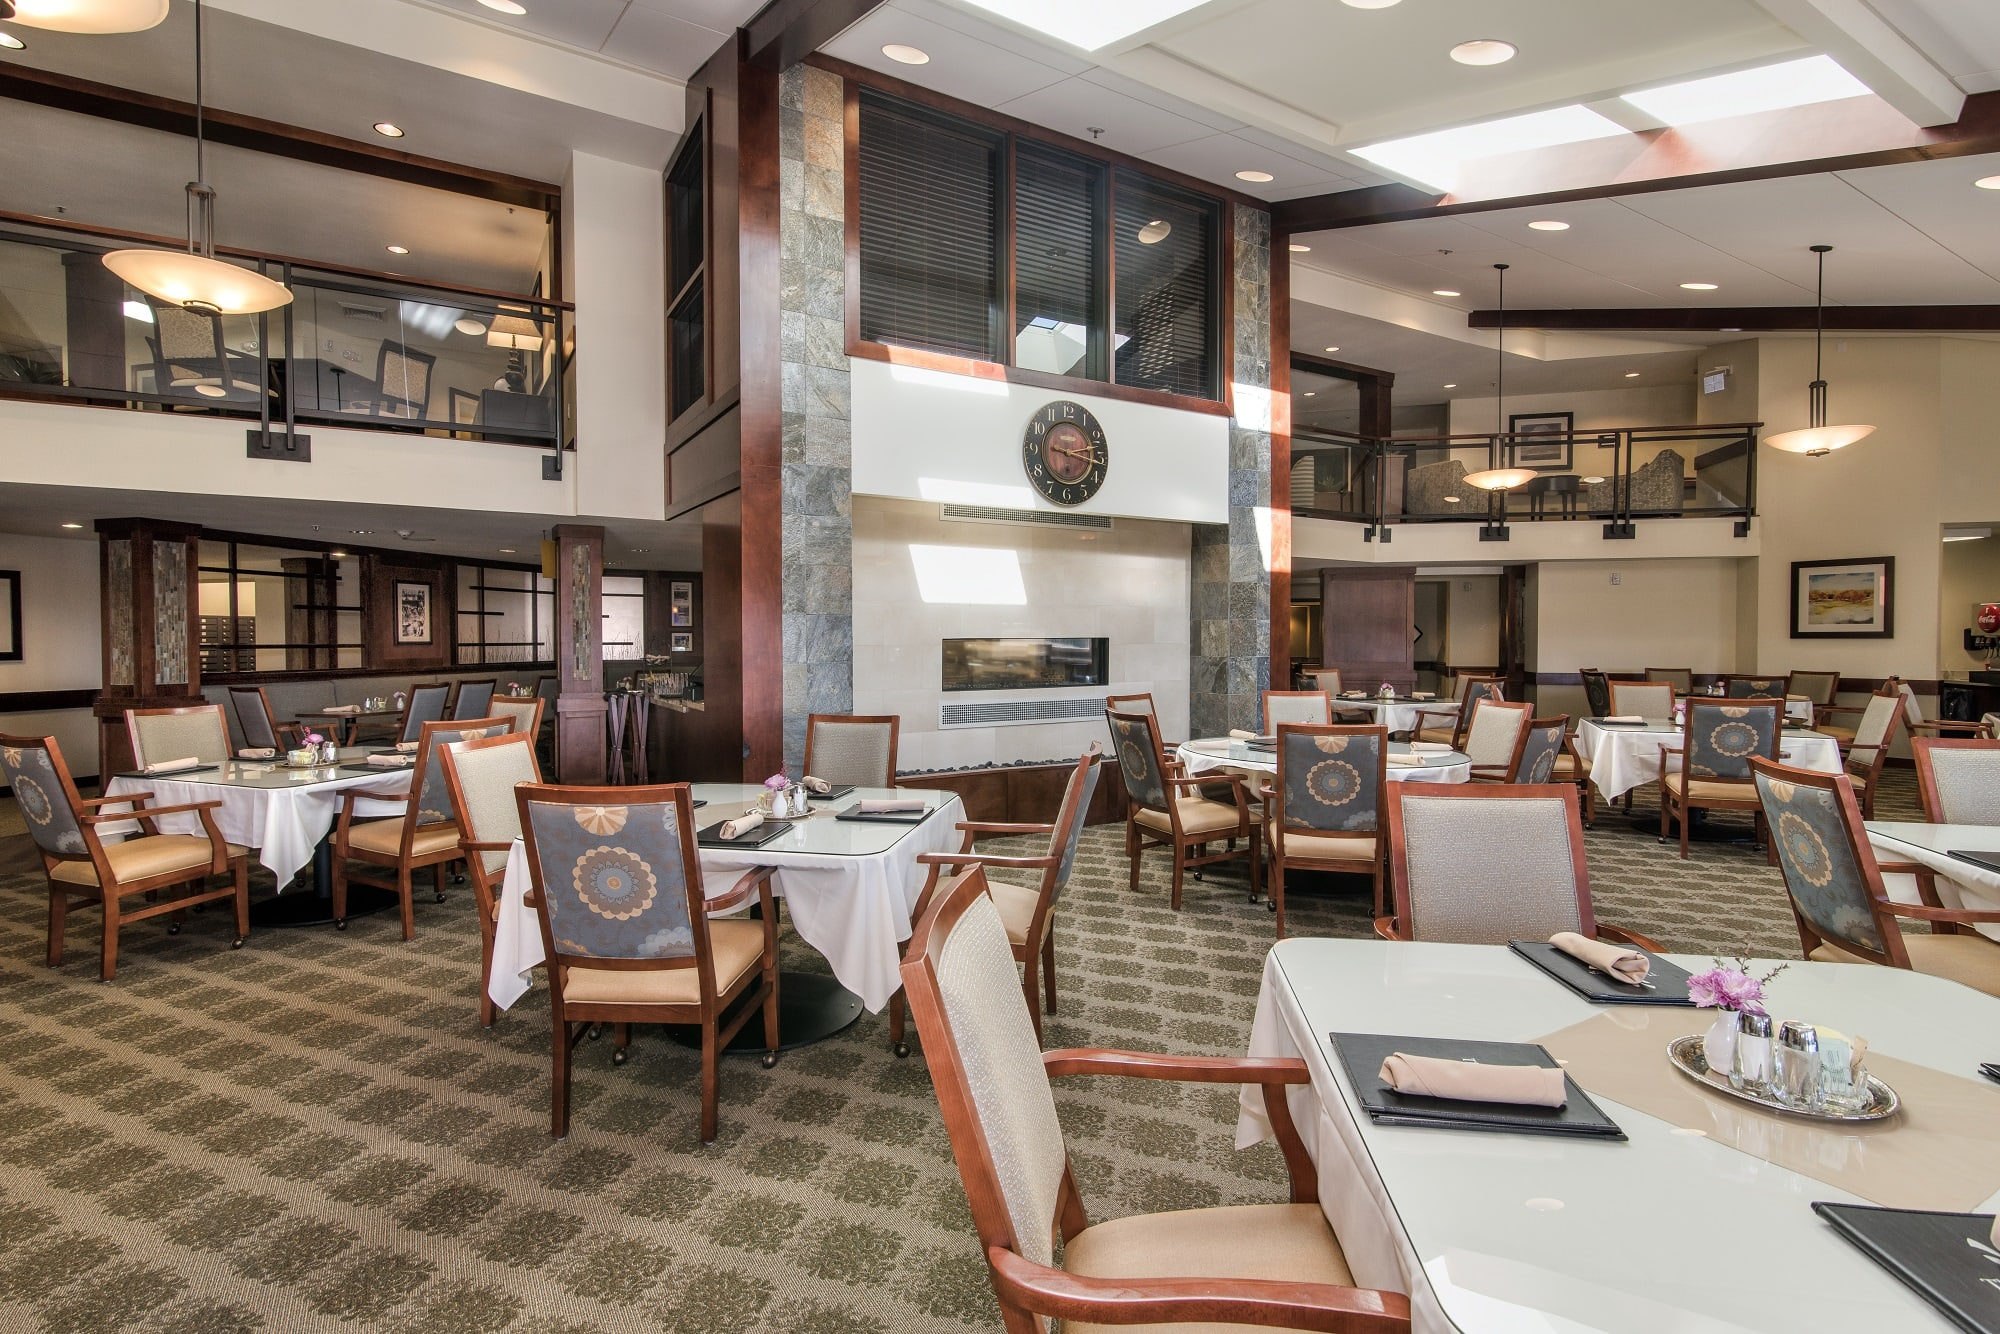 Enjoy a meal with friends in our beautiful dining room